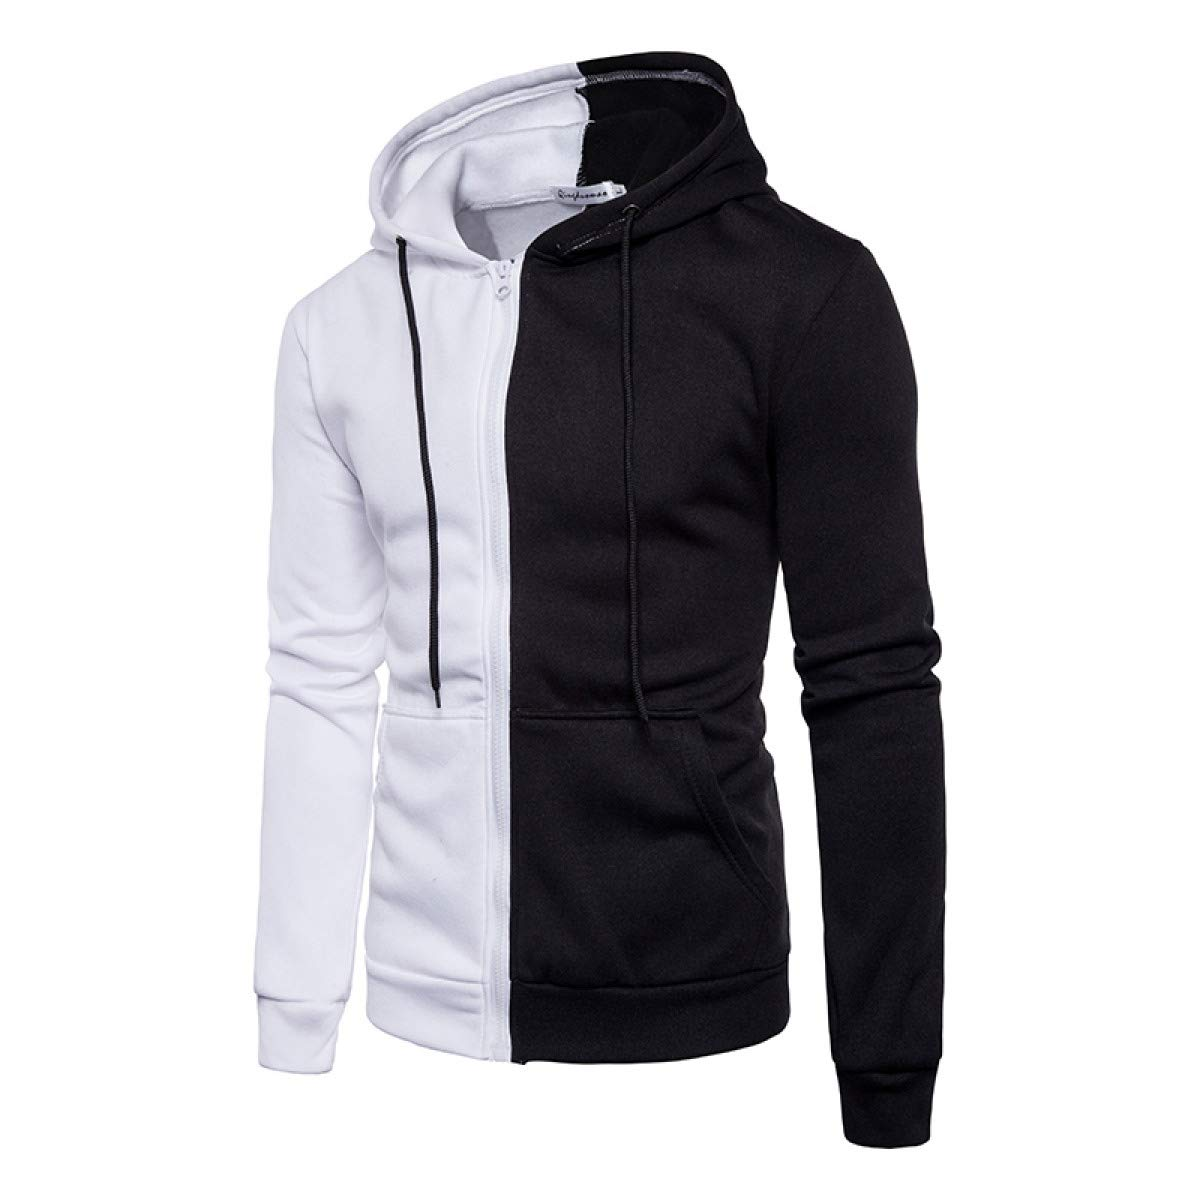 Amazon.com: WEEKEND SHOP Hoodies for Men Hoodies Men Hooded Sweatshirt Coat Mens Hoodies Slim Sportswear: Clothing